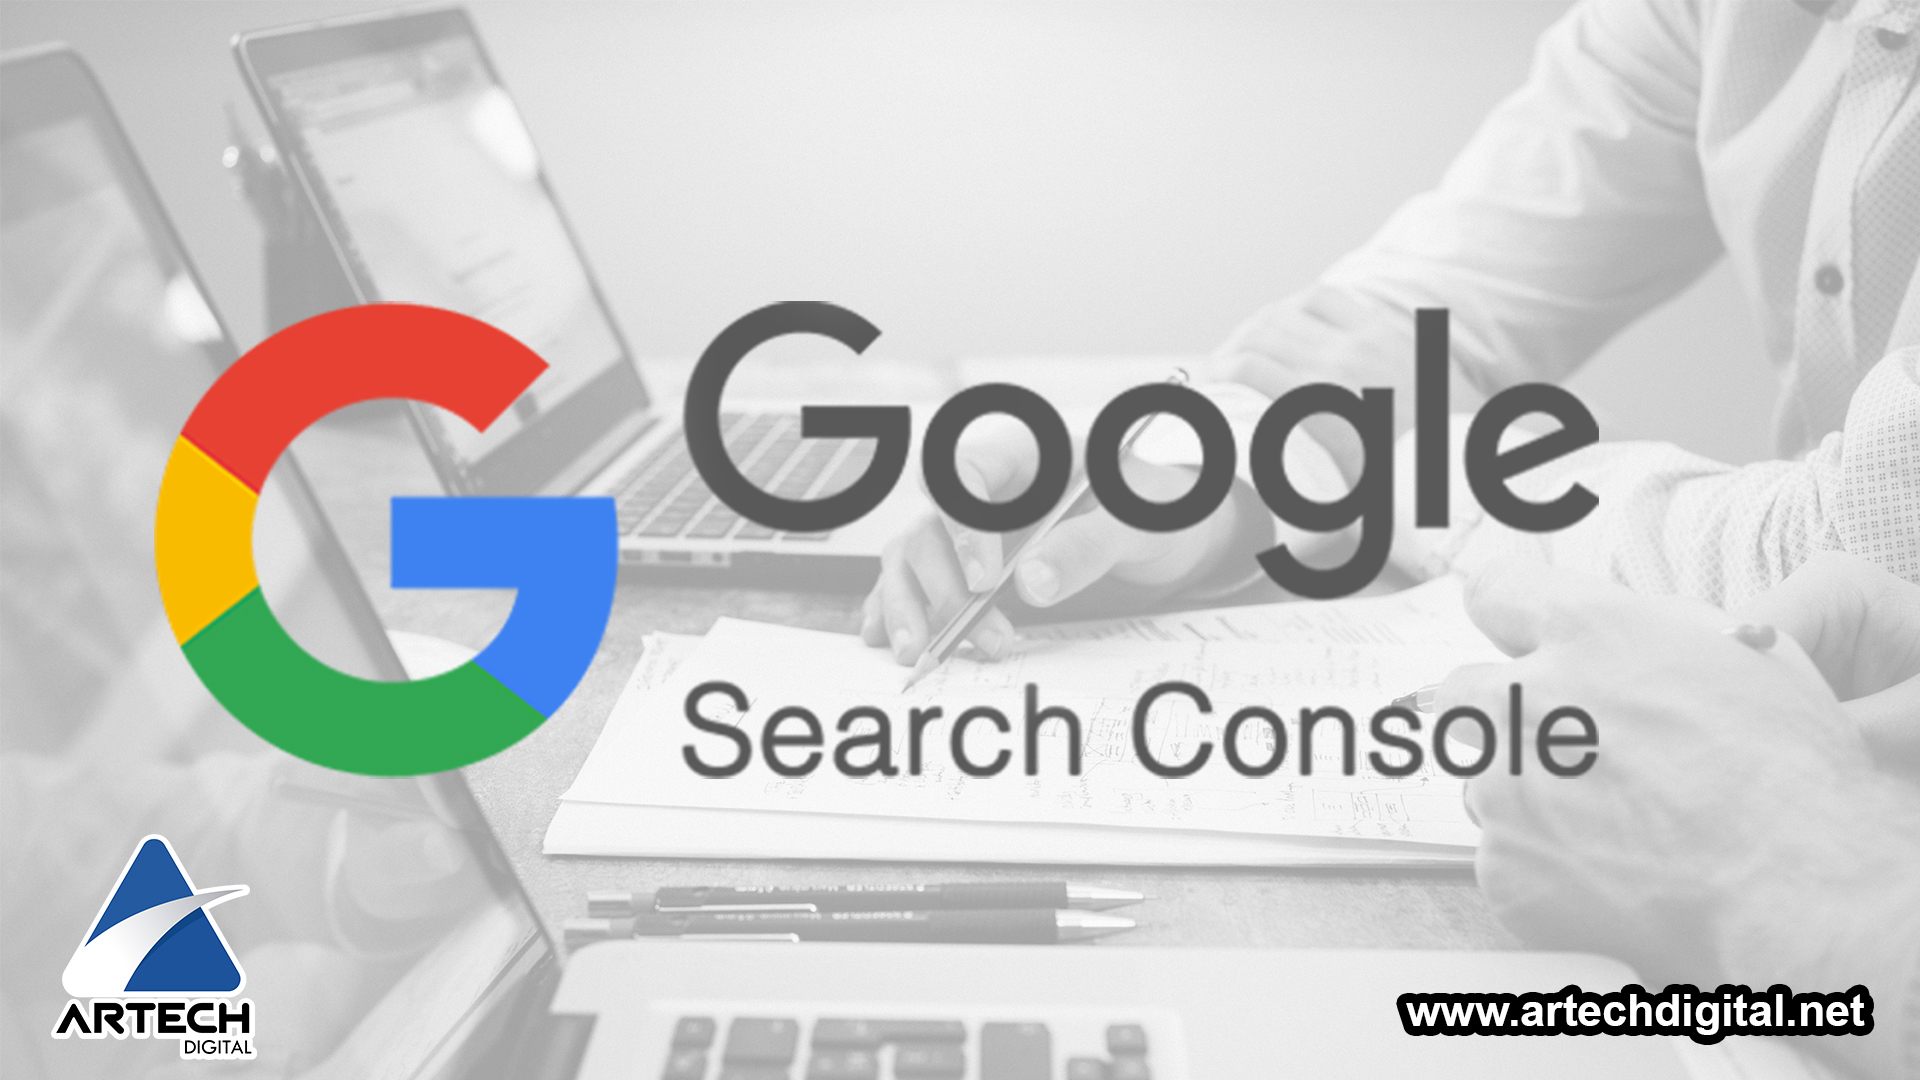 Artech Digital Google Search Console Inspección de URL